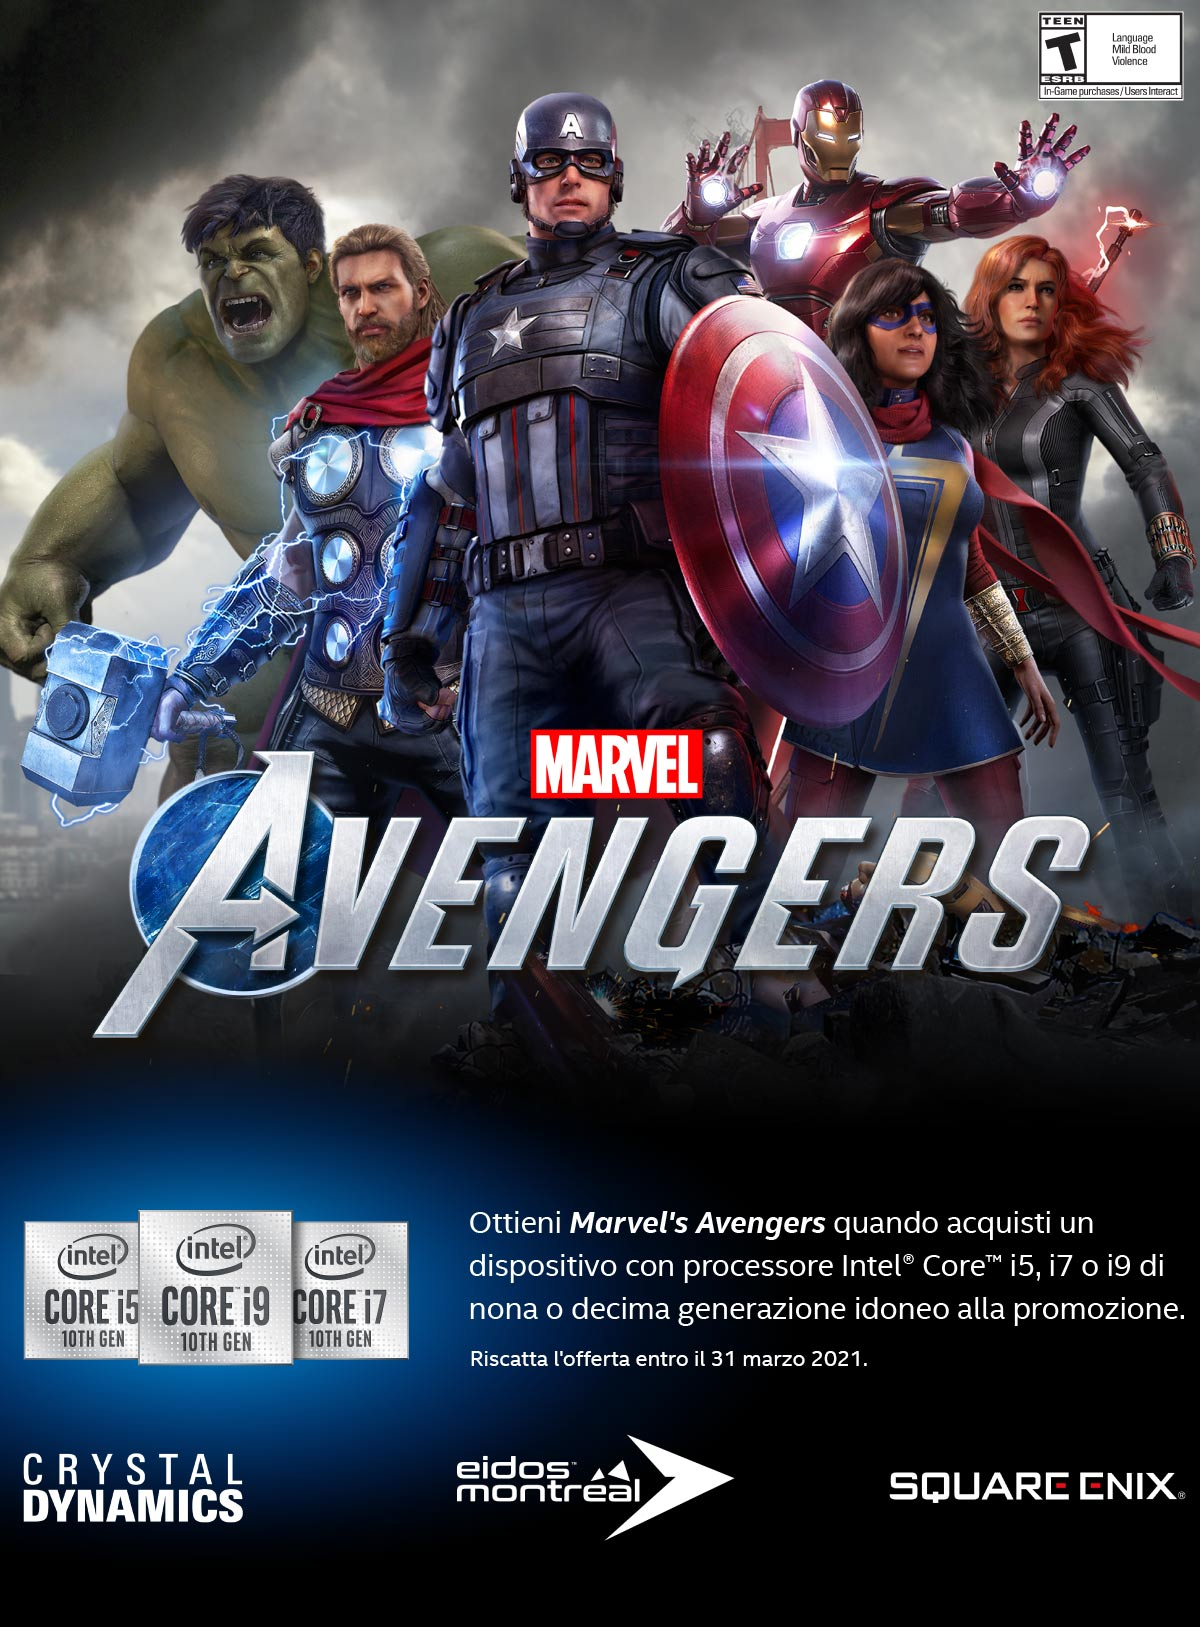 Intel Marvel Avengers